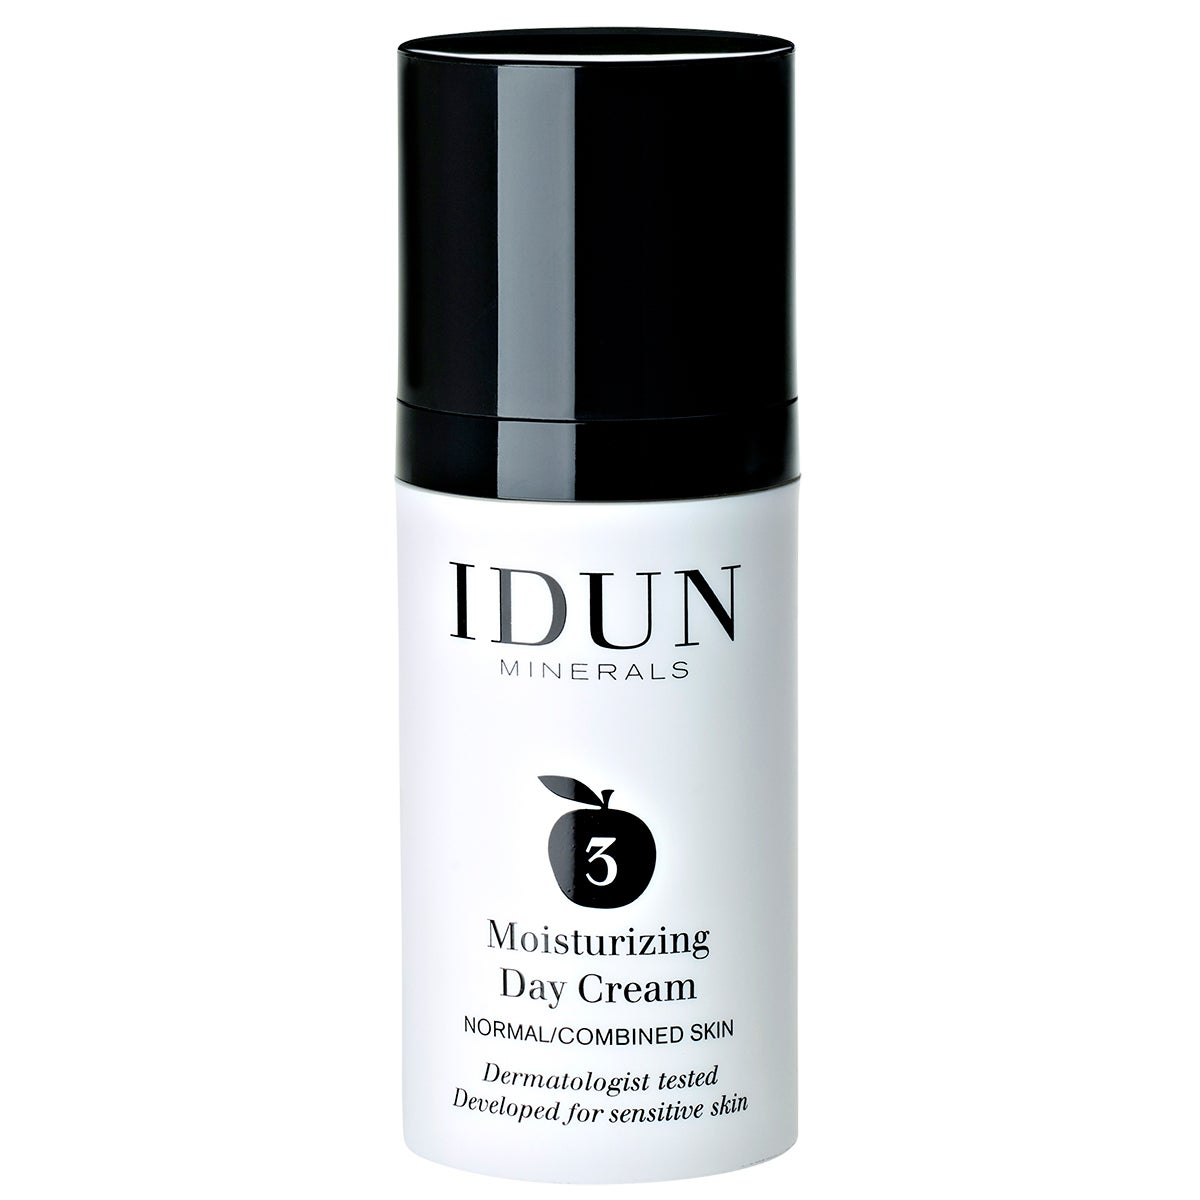 IDUN Minerals IDUN Moisturizing Day Cream for Normal/Combined Skin